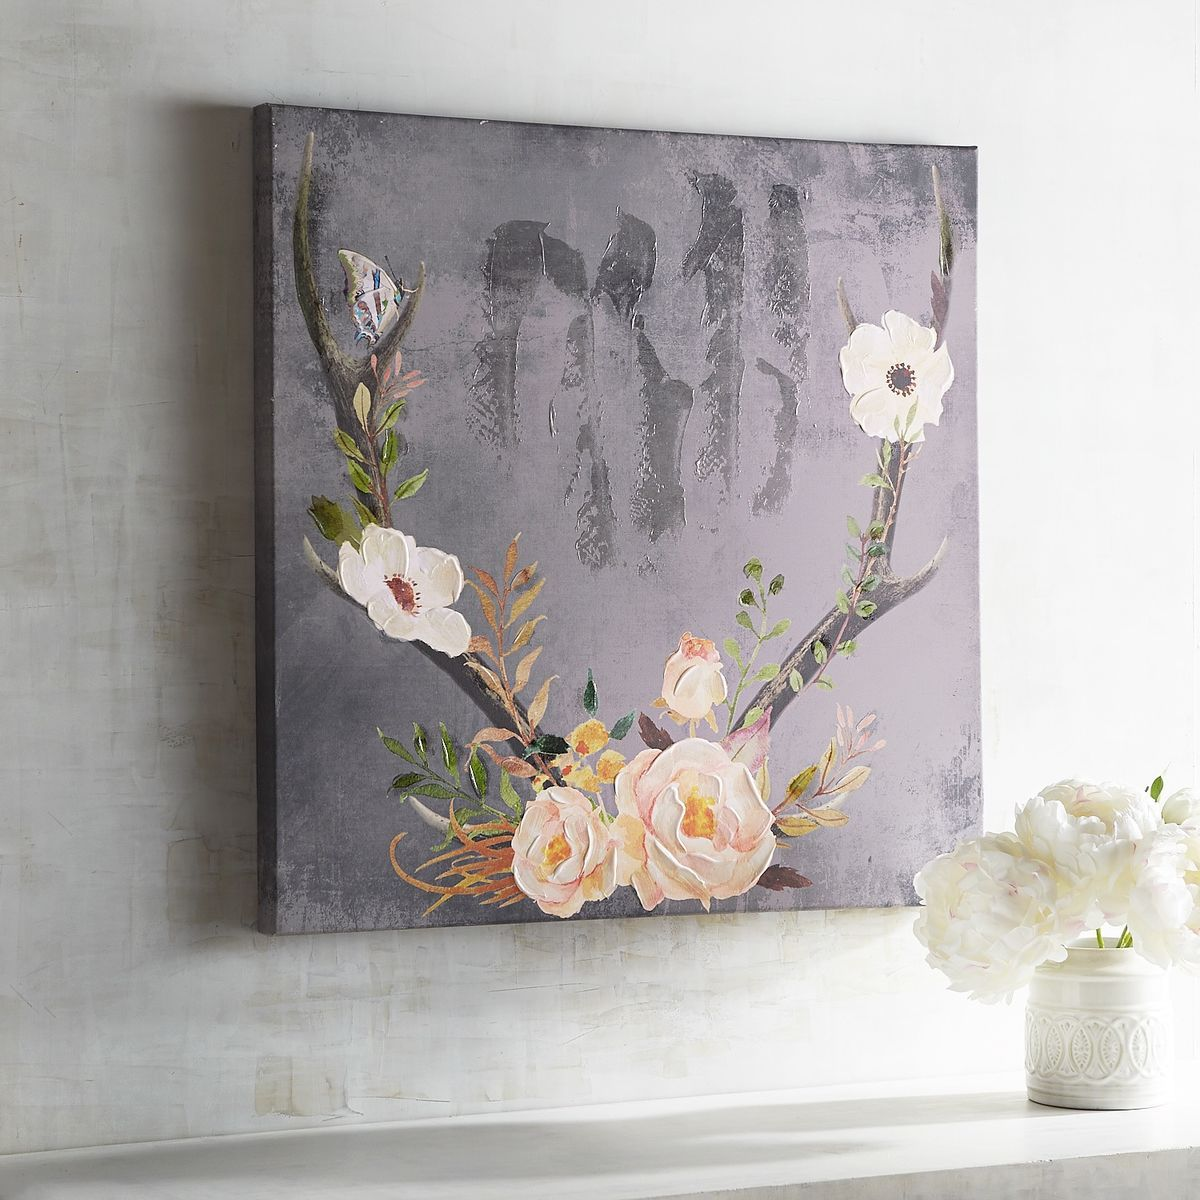 Multi Colored Floral Antlers Art   Blush   Canvas   Home Decor Wall Art  Ideas